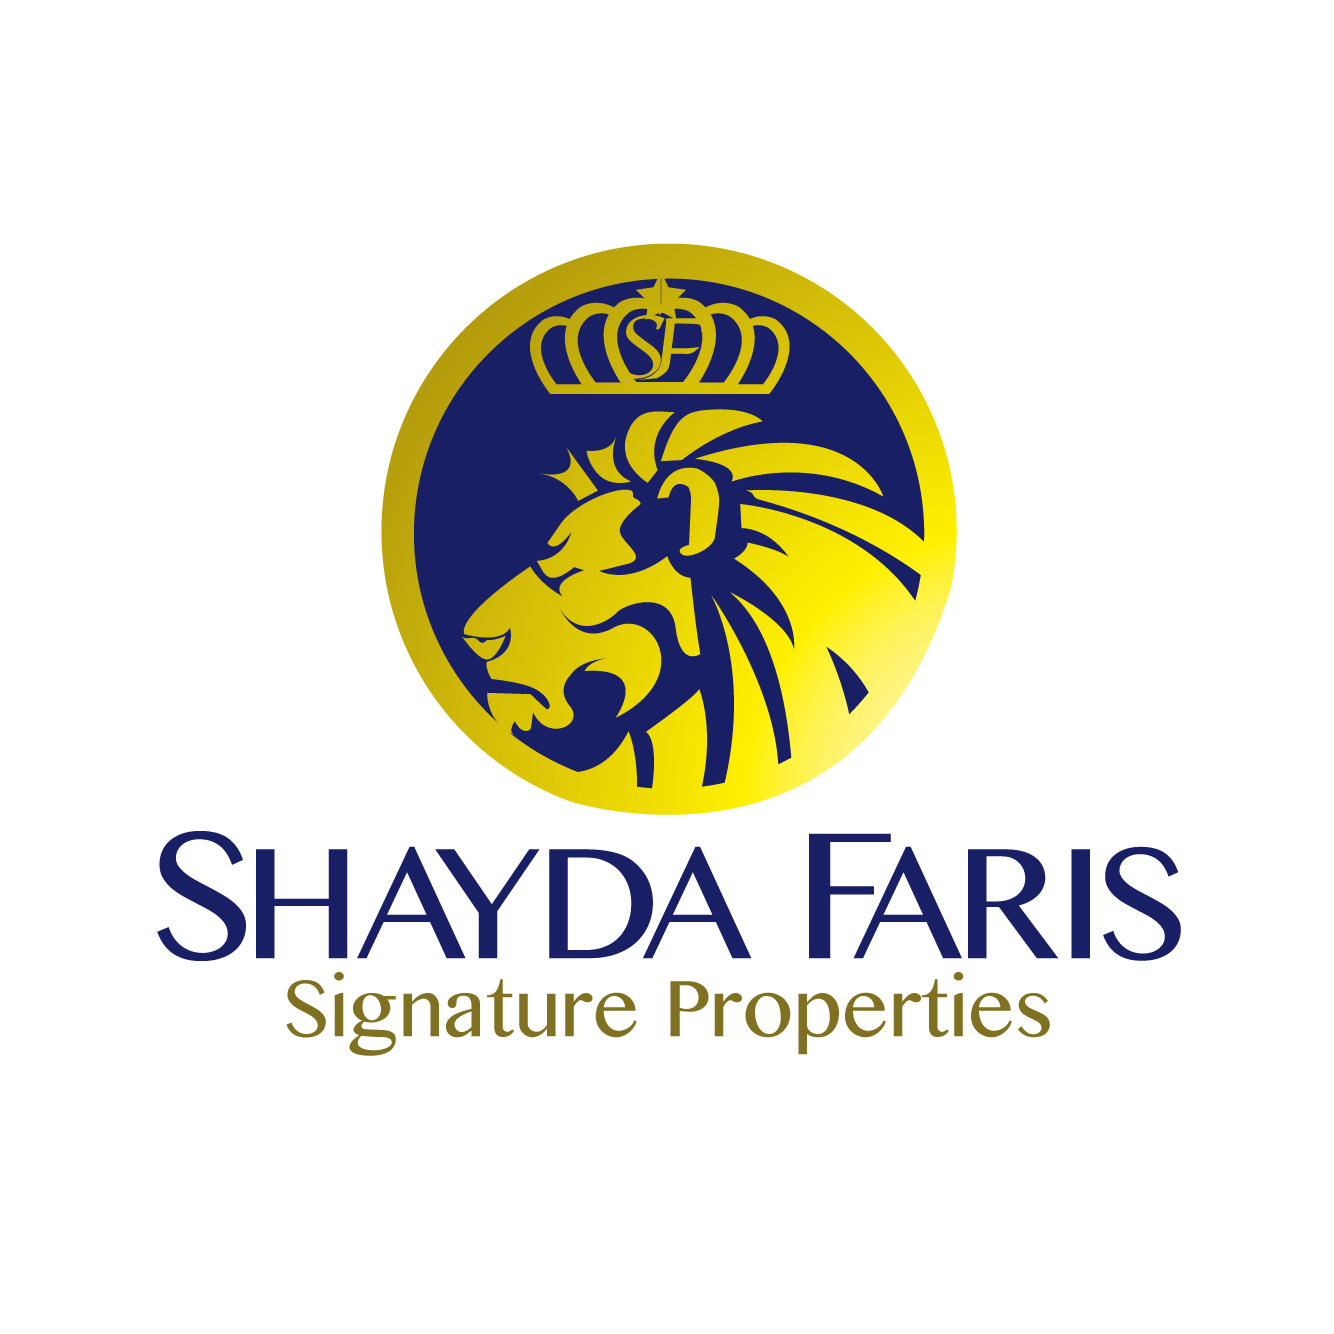 Logo Design by stormbighit - Entry No. 90 in the Logo Design Contest Unique Logo Design Wanted for Shayda Faris.